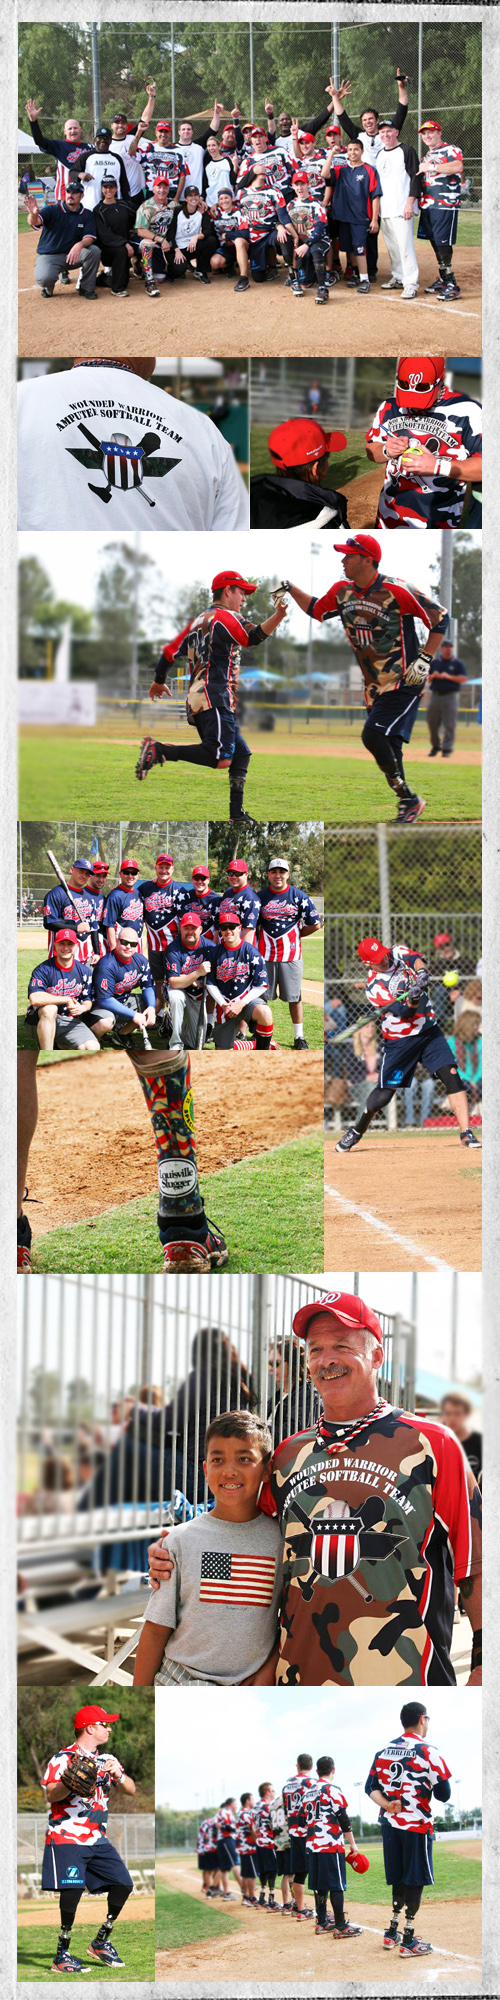 Wounded Warrior Amputee Softball Team images